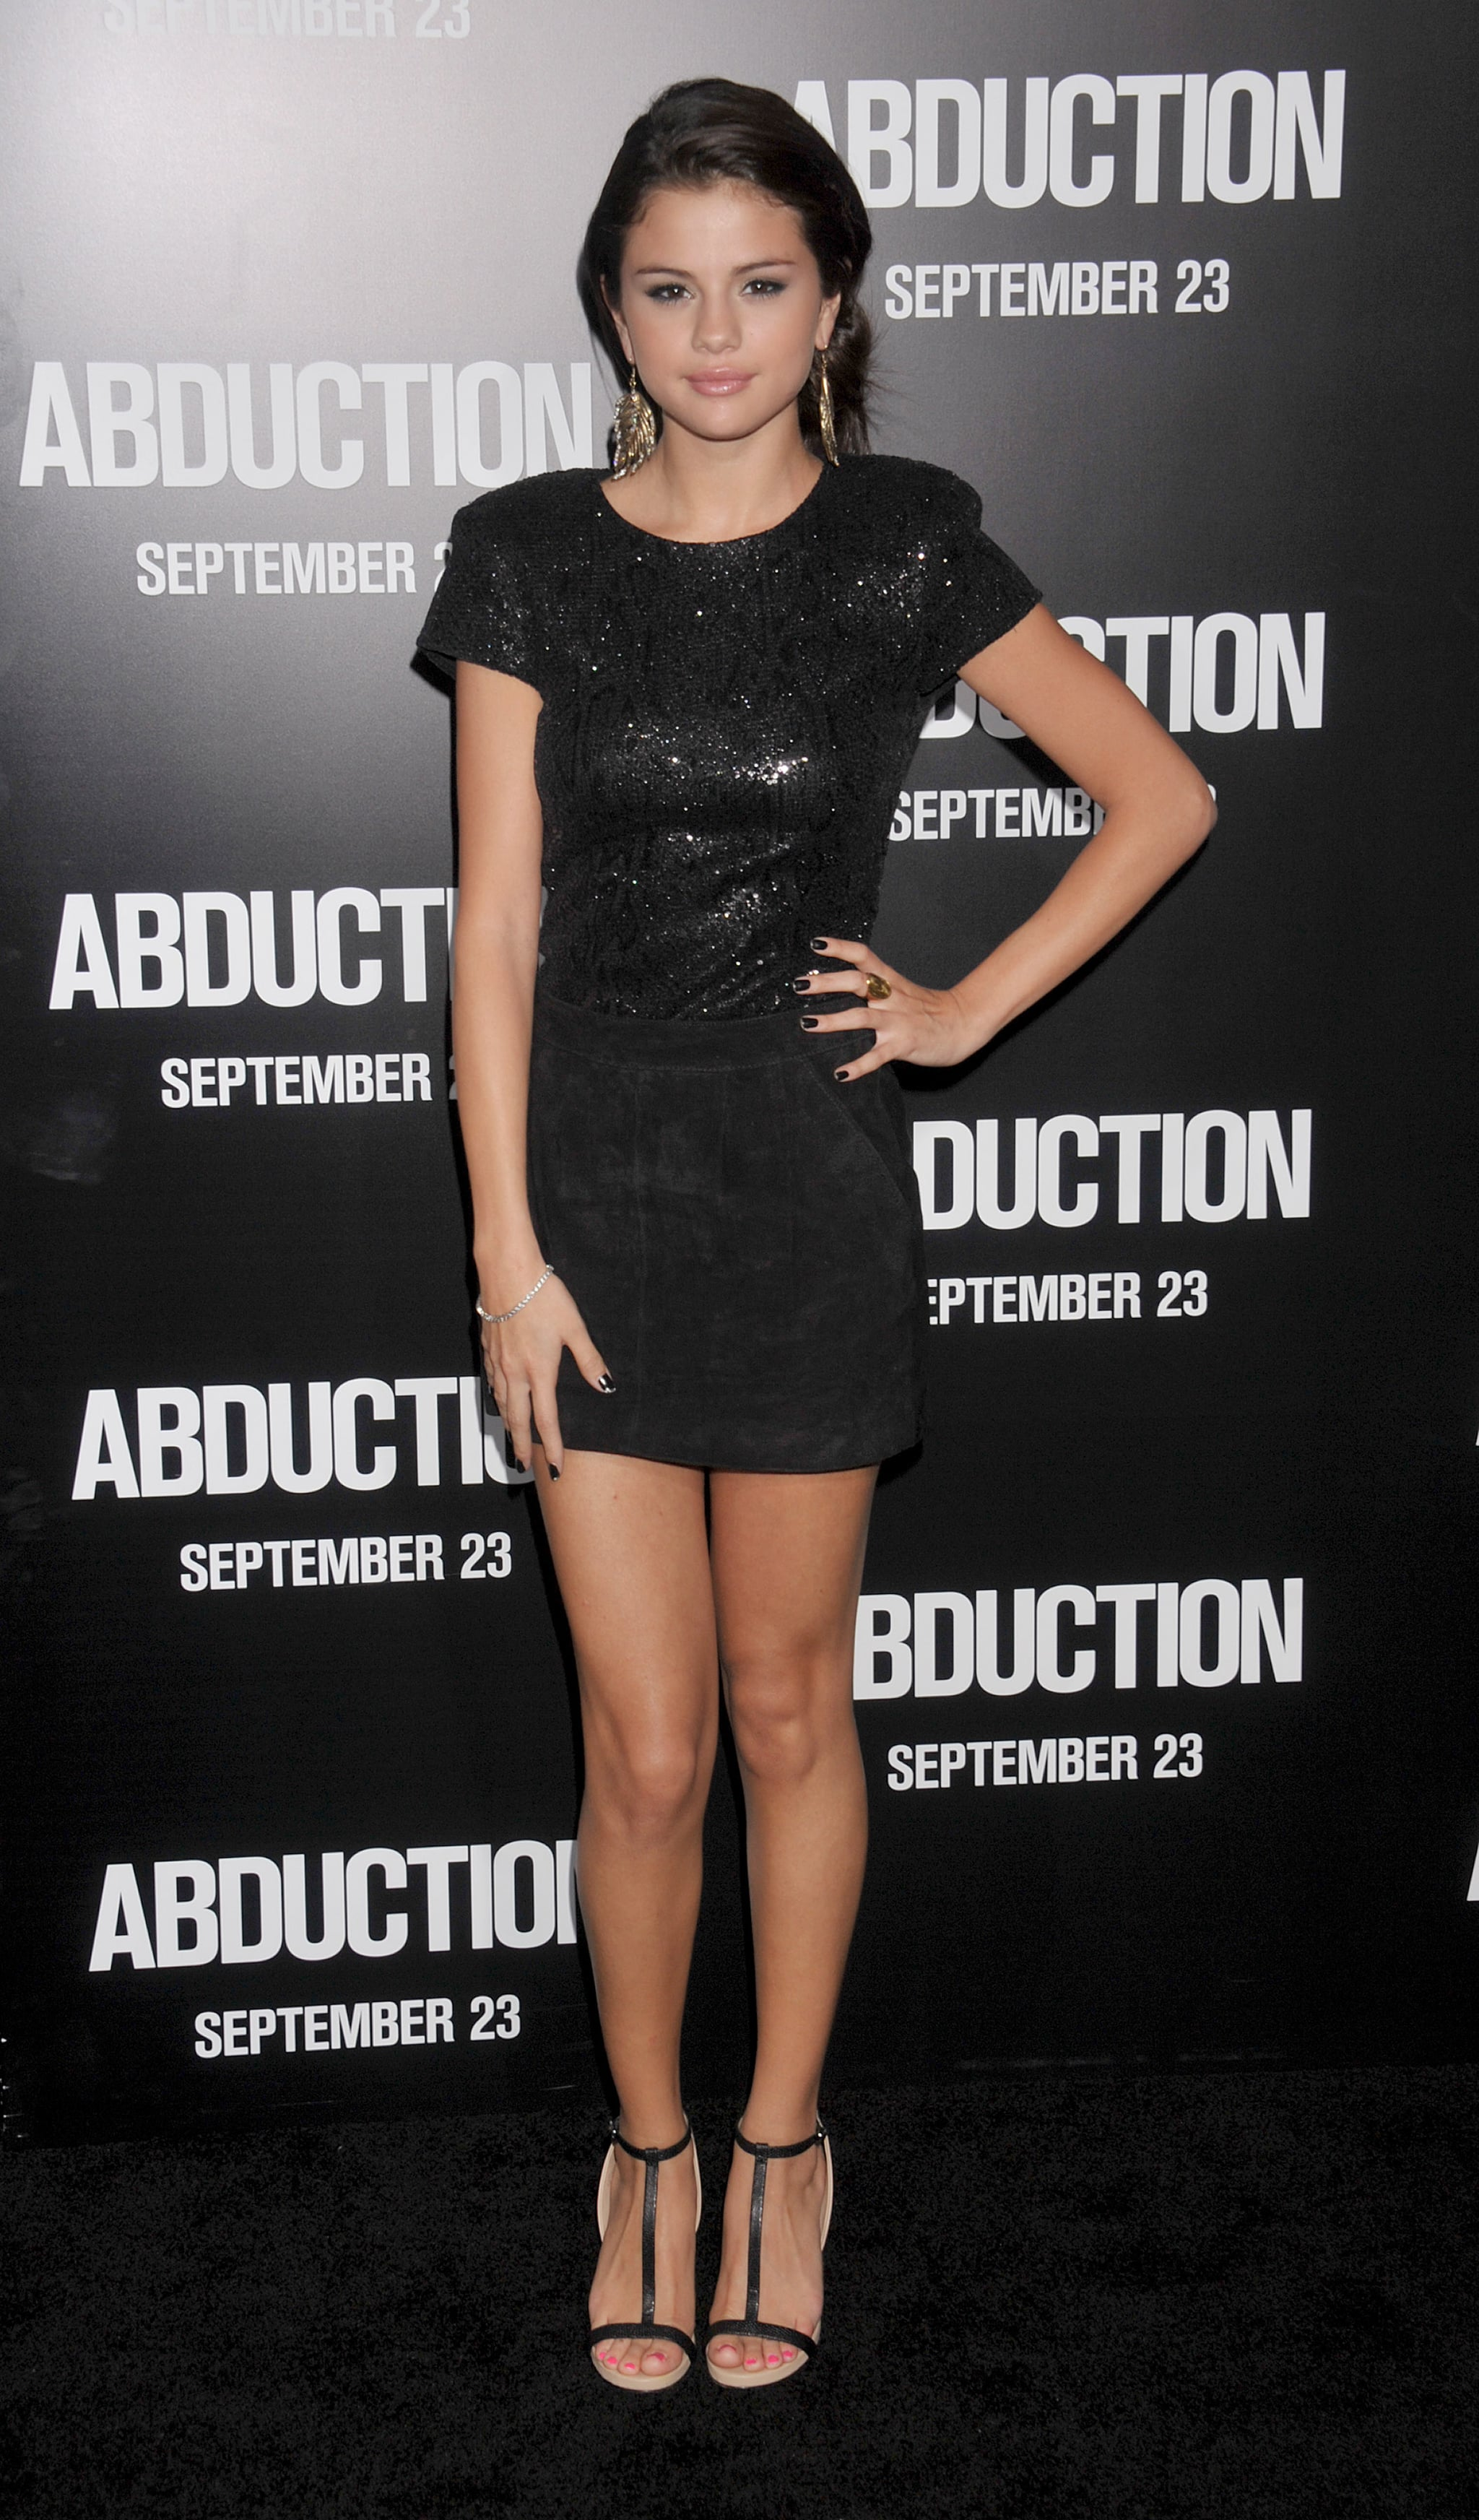 Selena sparkled in a sleek black minidress for the premiere of Abduction in 2011.